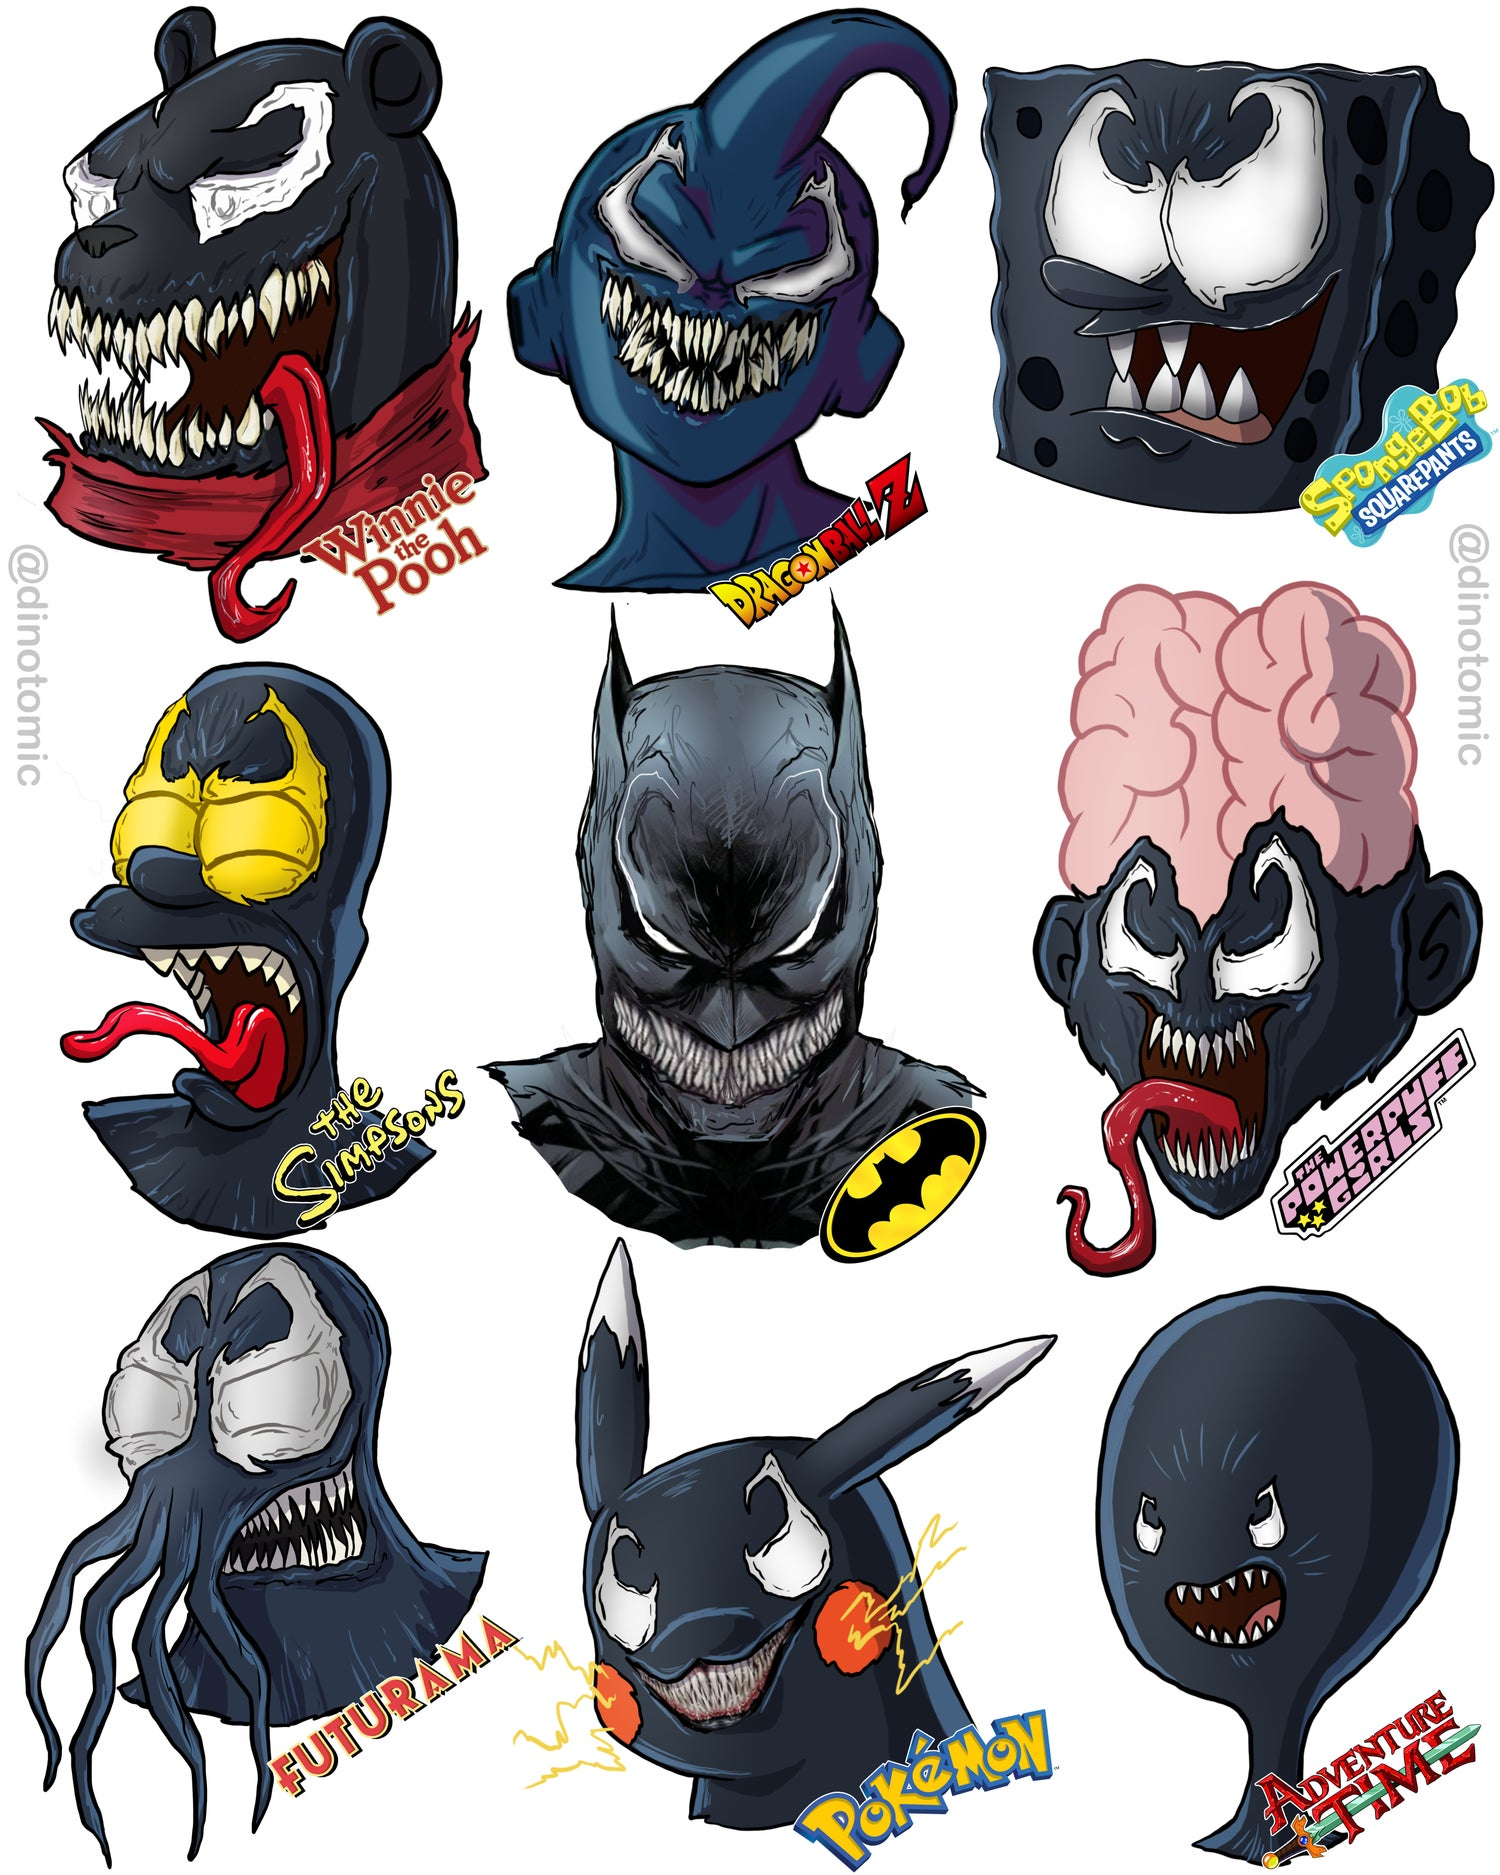 Image of #246 Venom different characters